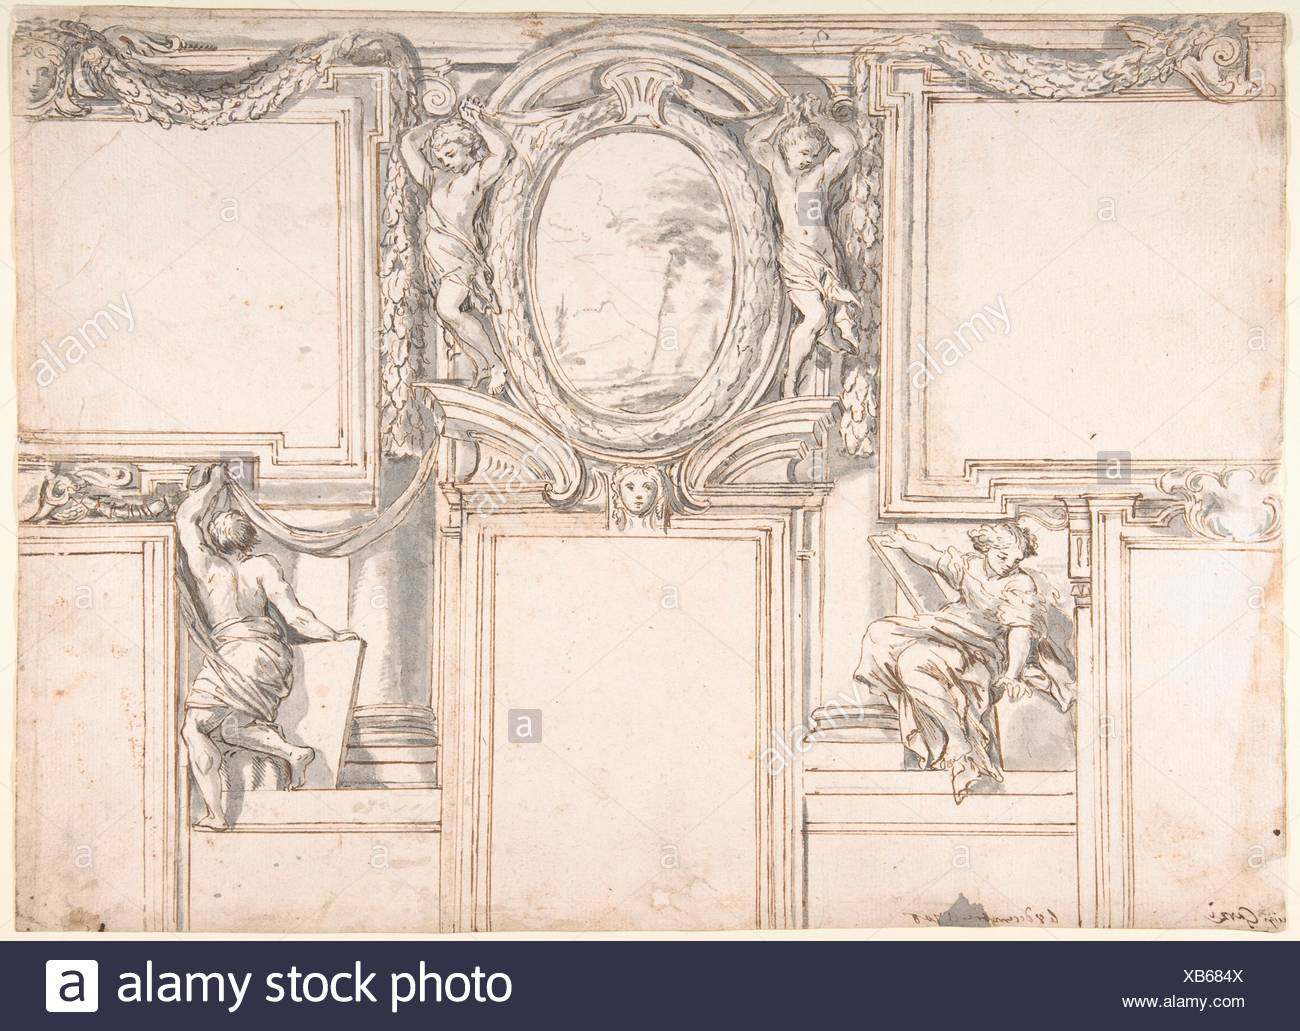 Design Wall Elevation with Stucco and Painted Decorations. Artist: Luigi Garzi (Italian, Pistoia 1638-1721 Rome); Date: 1708; Medium: Pen and brown - Stock Image